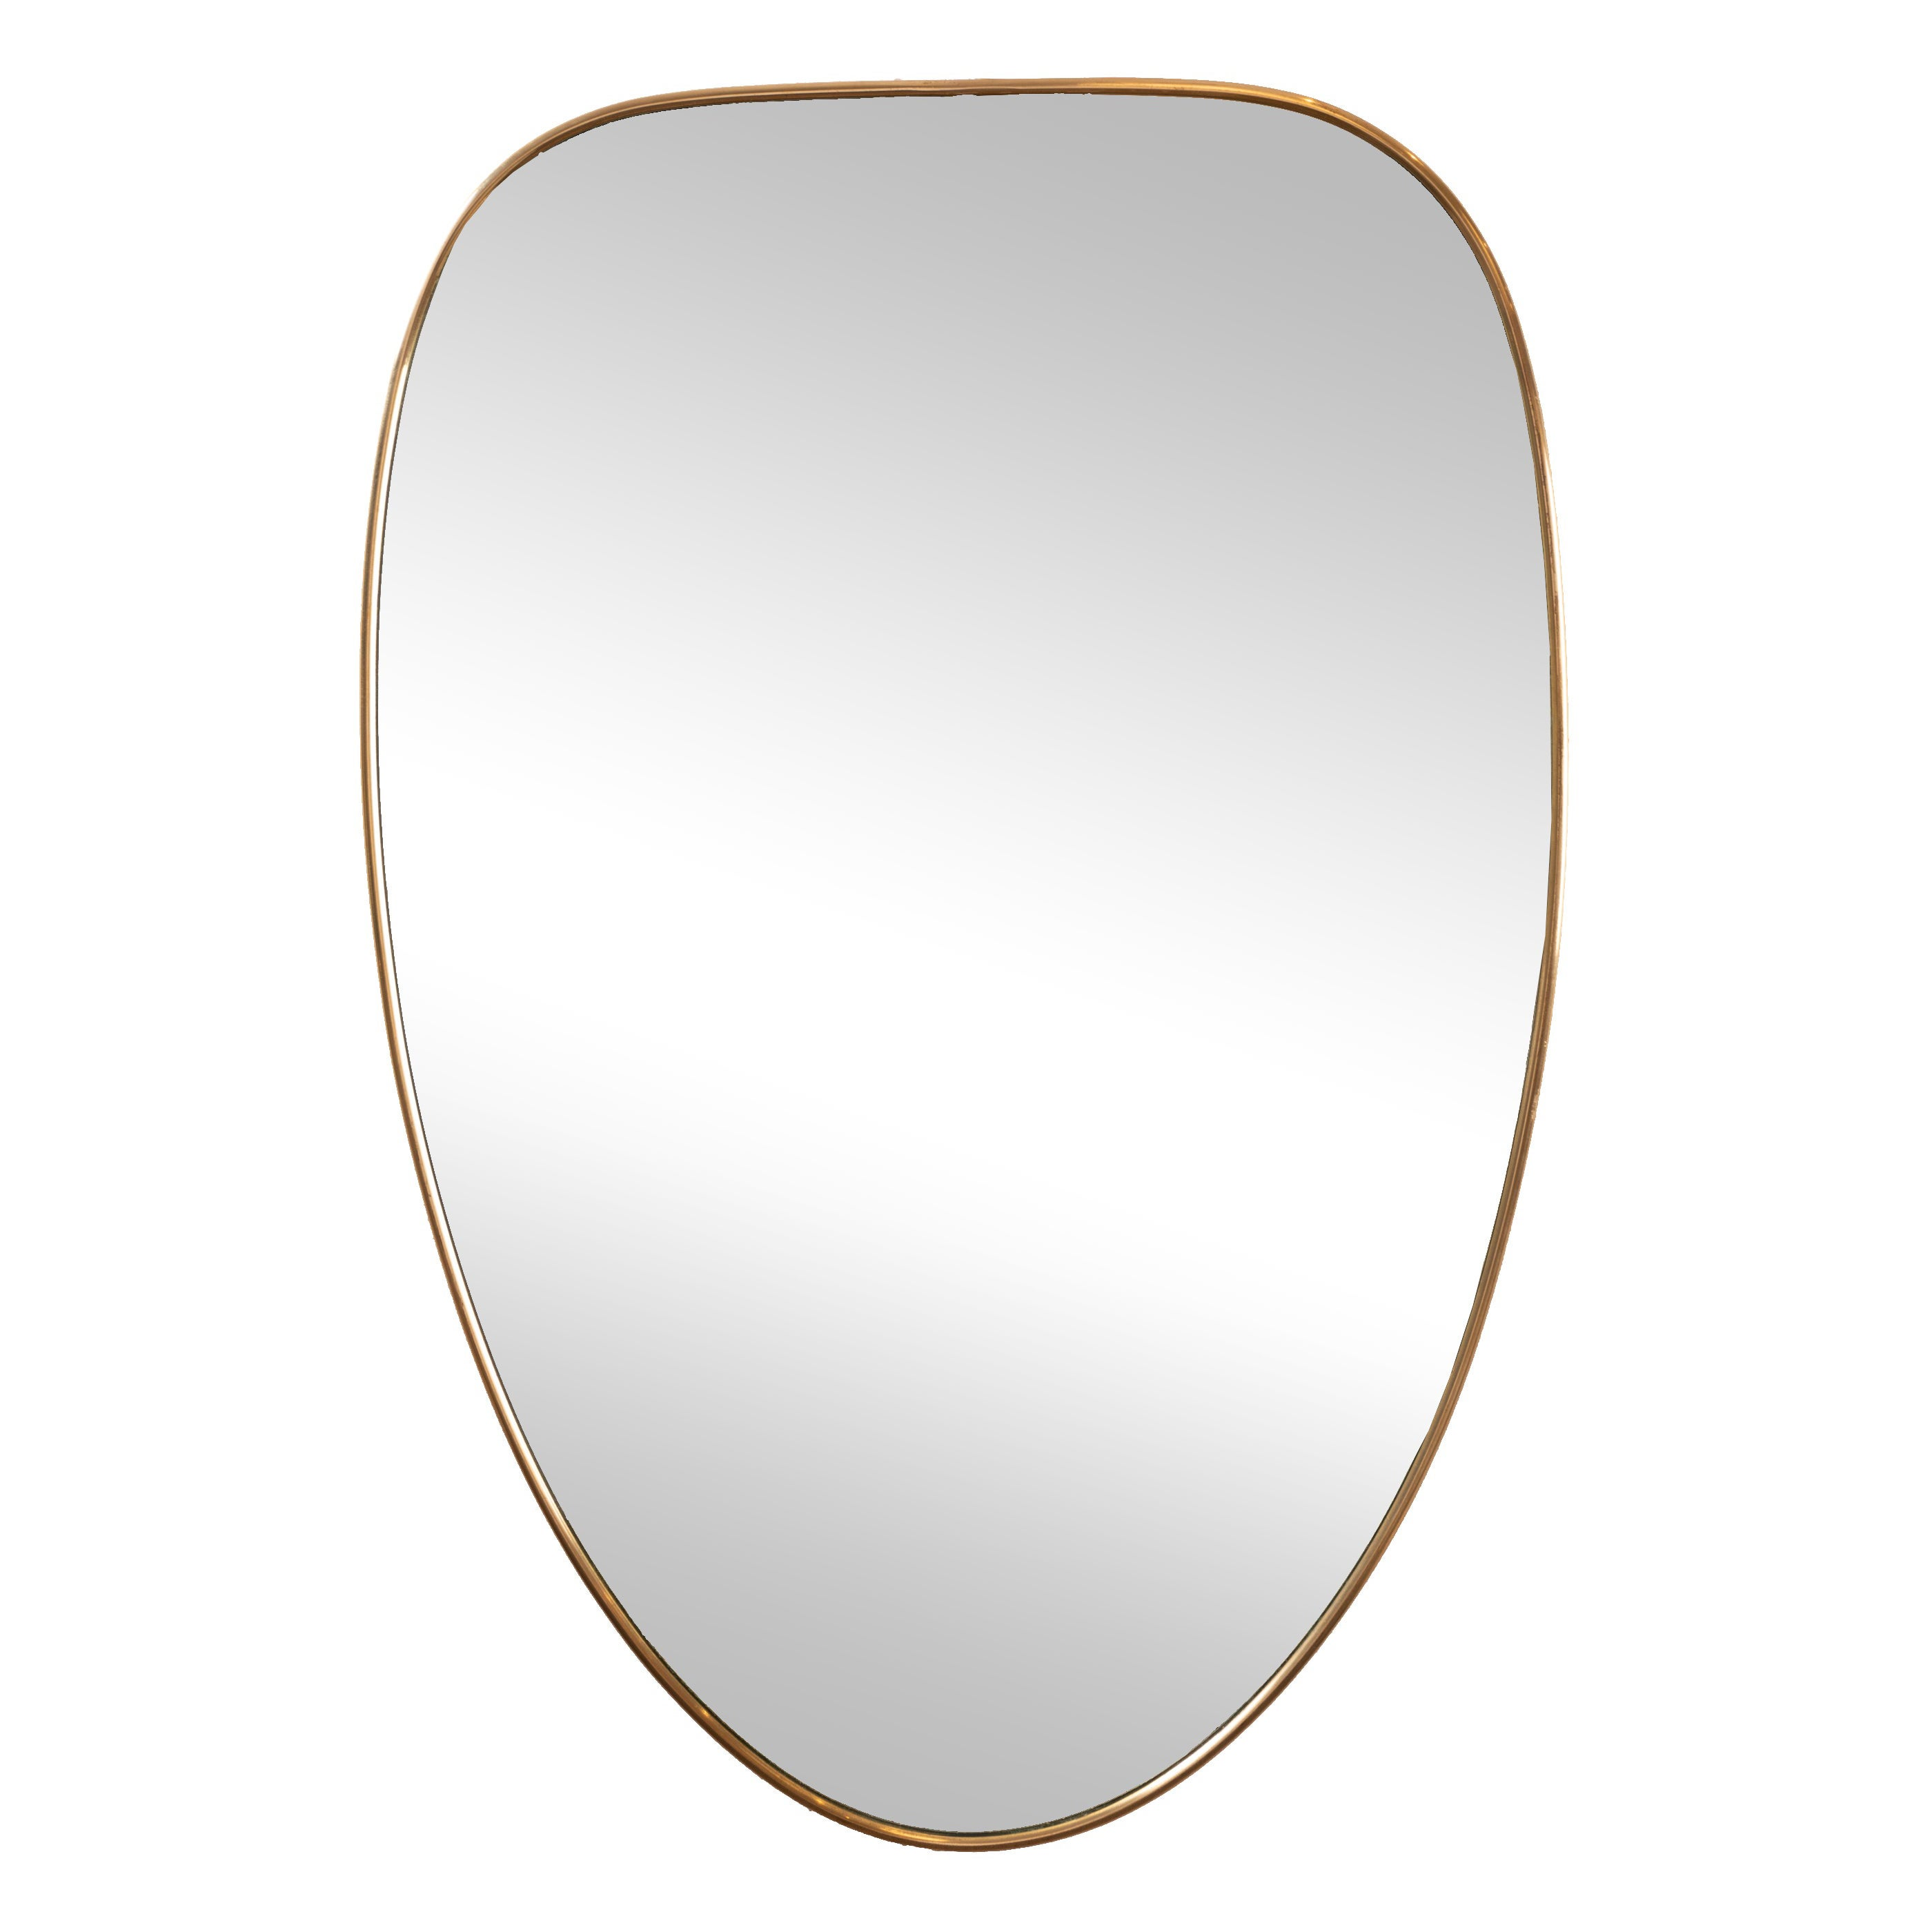 Brass Framed Mirror in the Style of Gio Ponti, Italy, 1950's